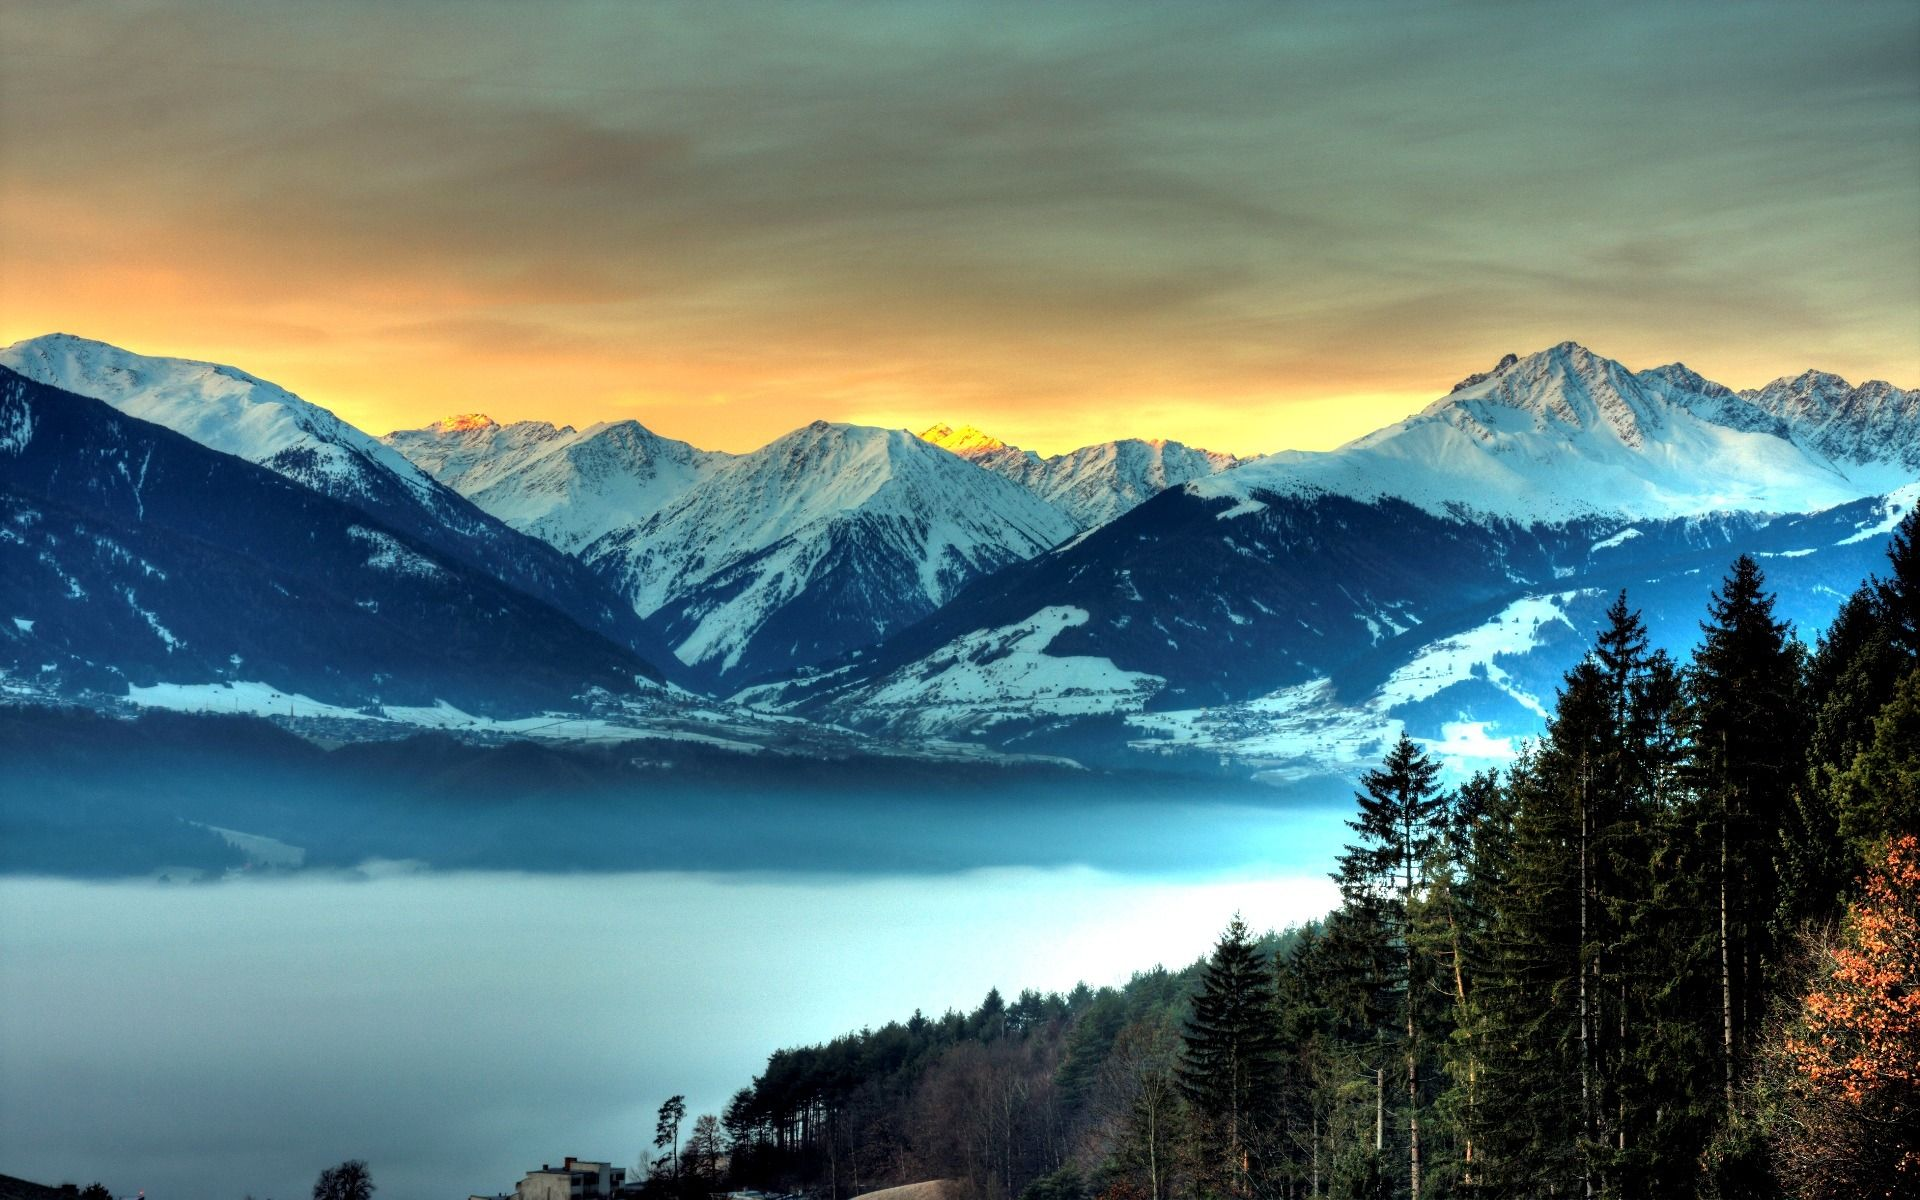 Gmail mountain theme background - Mountain Land Hd Wallpapers Very Attractive Now You Can Download Free For Mobiles And Laptop